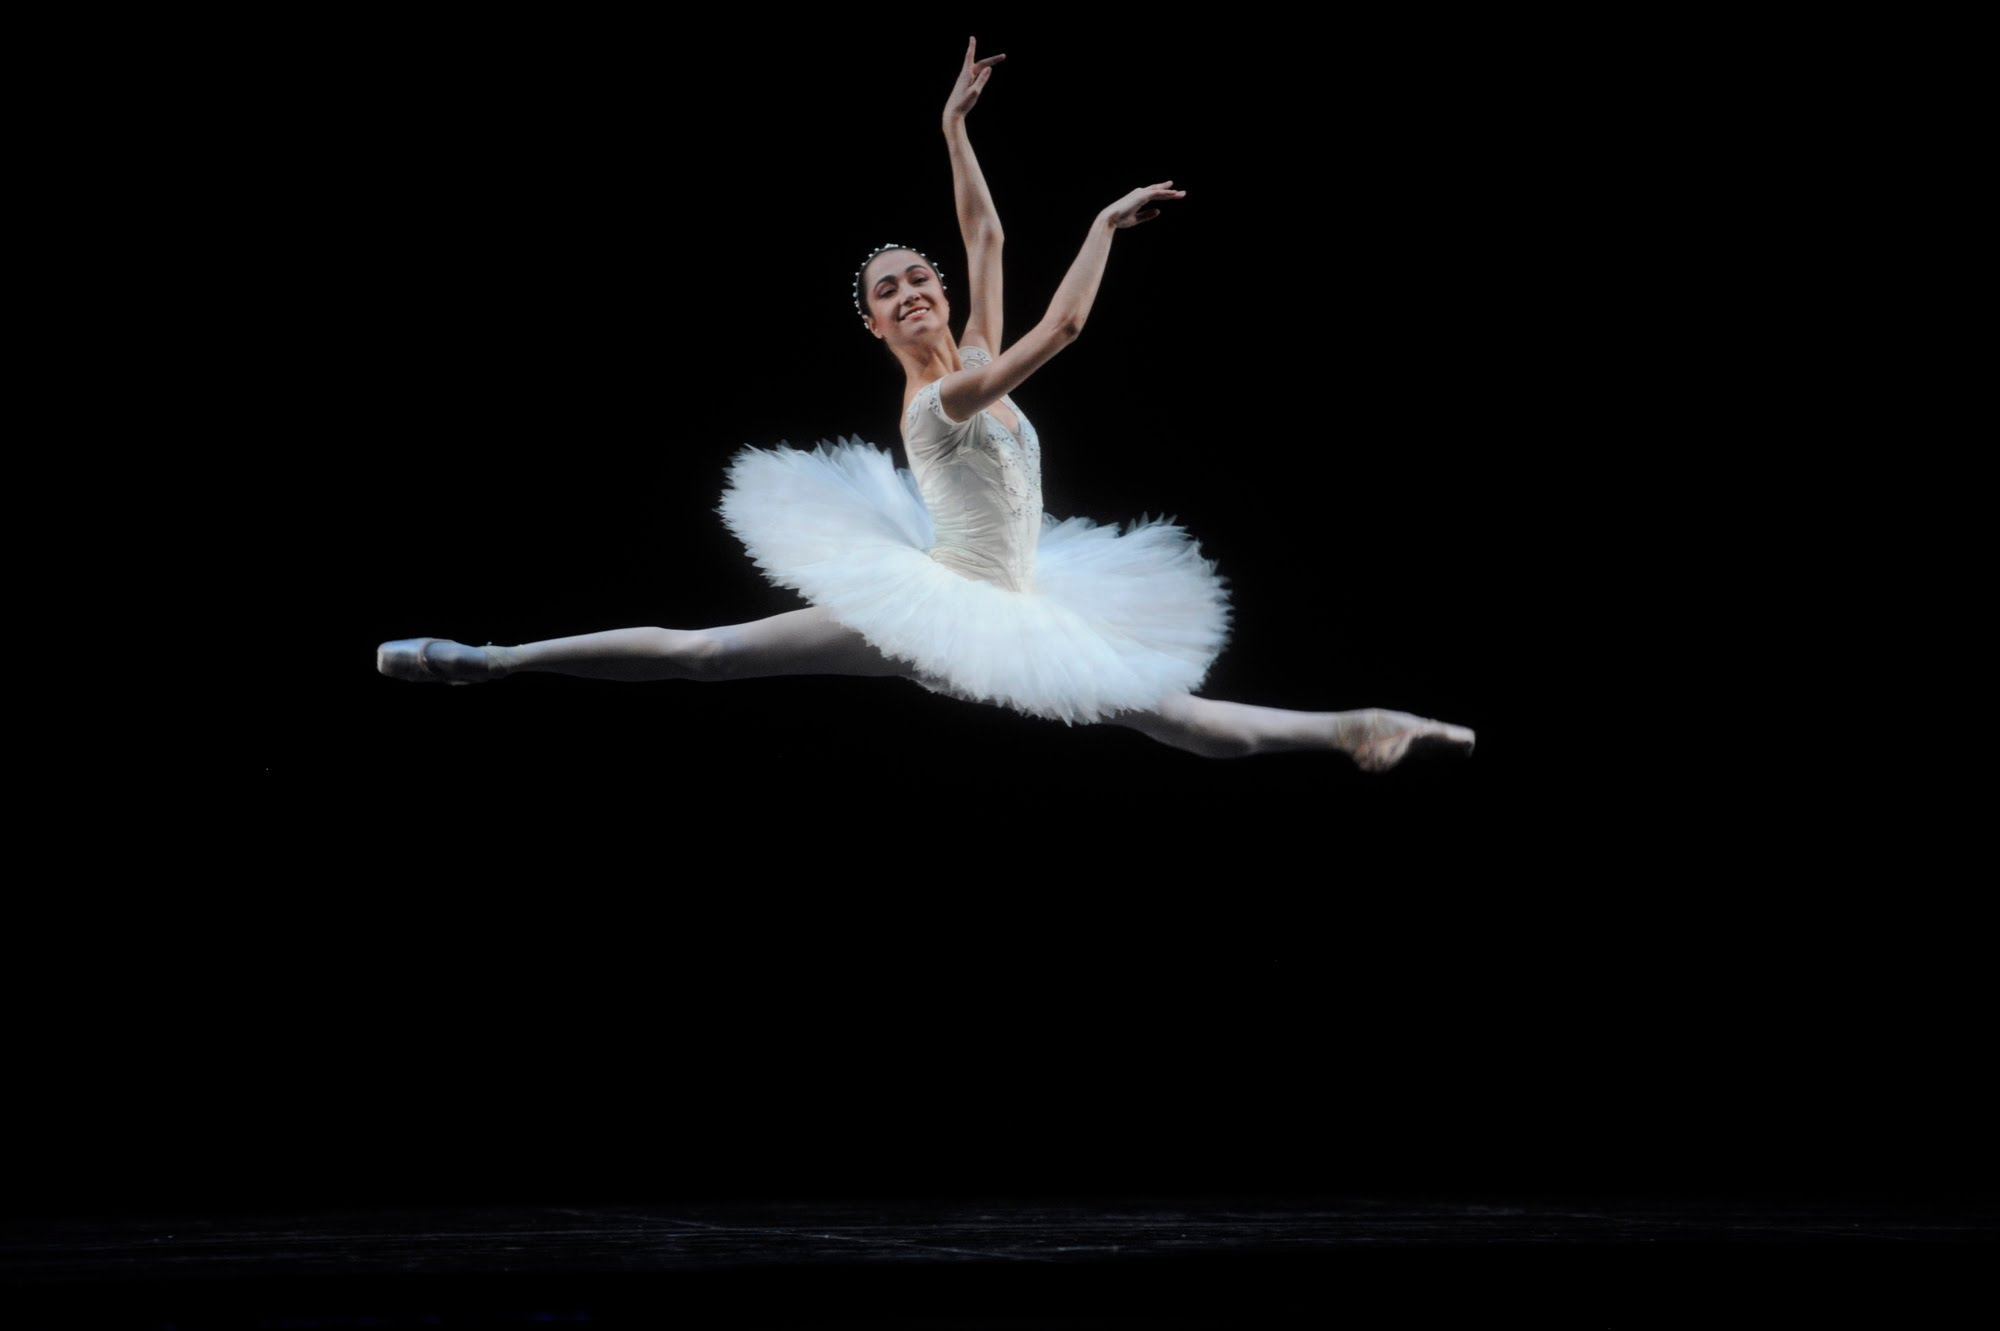 Mathilde Froustey, Principal Dancer with San Francisco Ballet, mathilde Froustey, san francisco ballet, sfb, miami city ballet, paris opera ballet, paris opera ballet school, rebecca king ferraro, michael sean breeden, dance podcast, ballet podcast, miami city ballet dancers, san francisco ballet dancer, principal dancer, san francisco